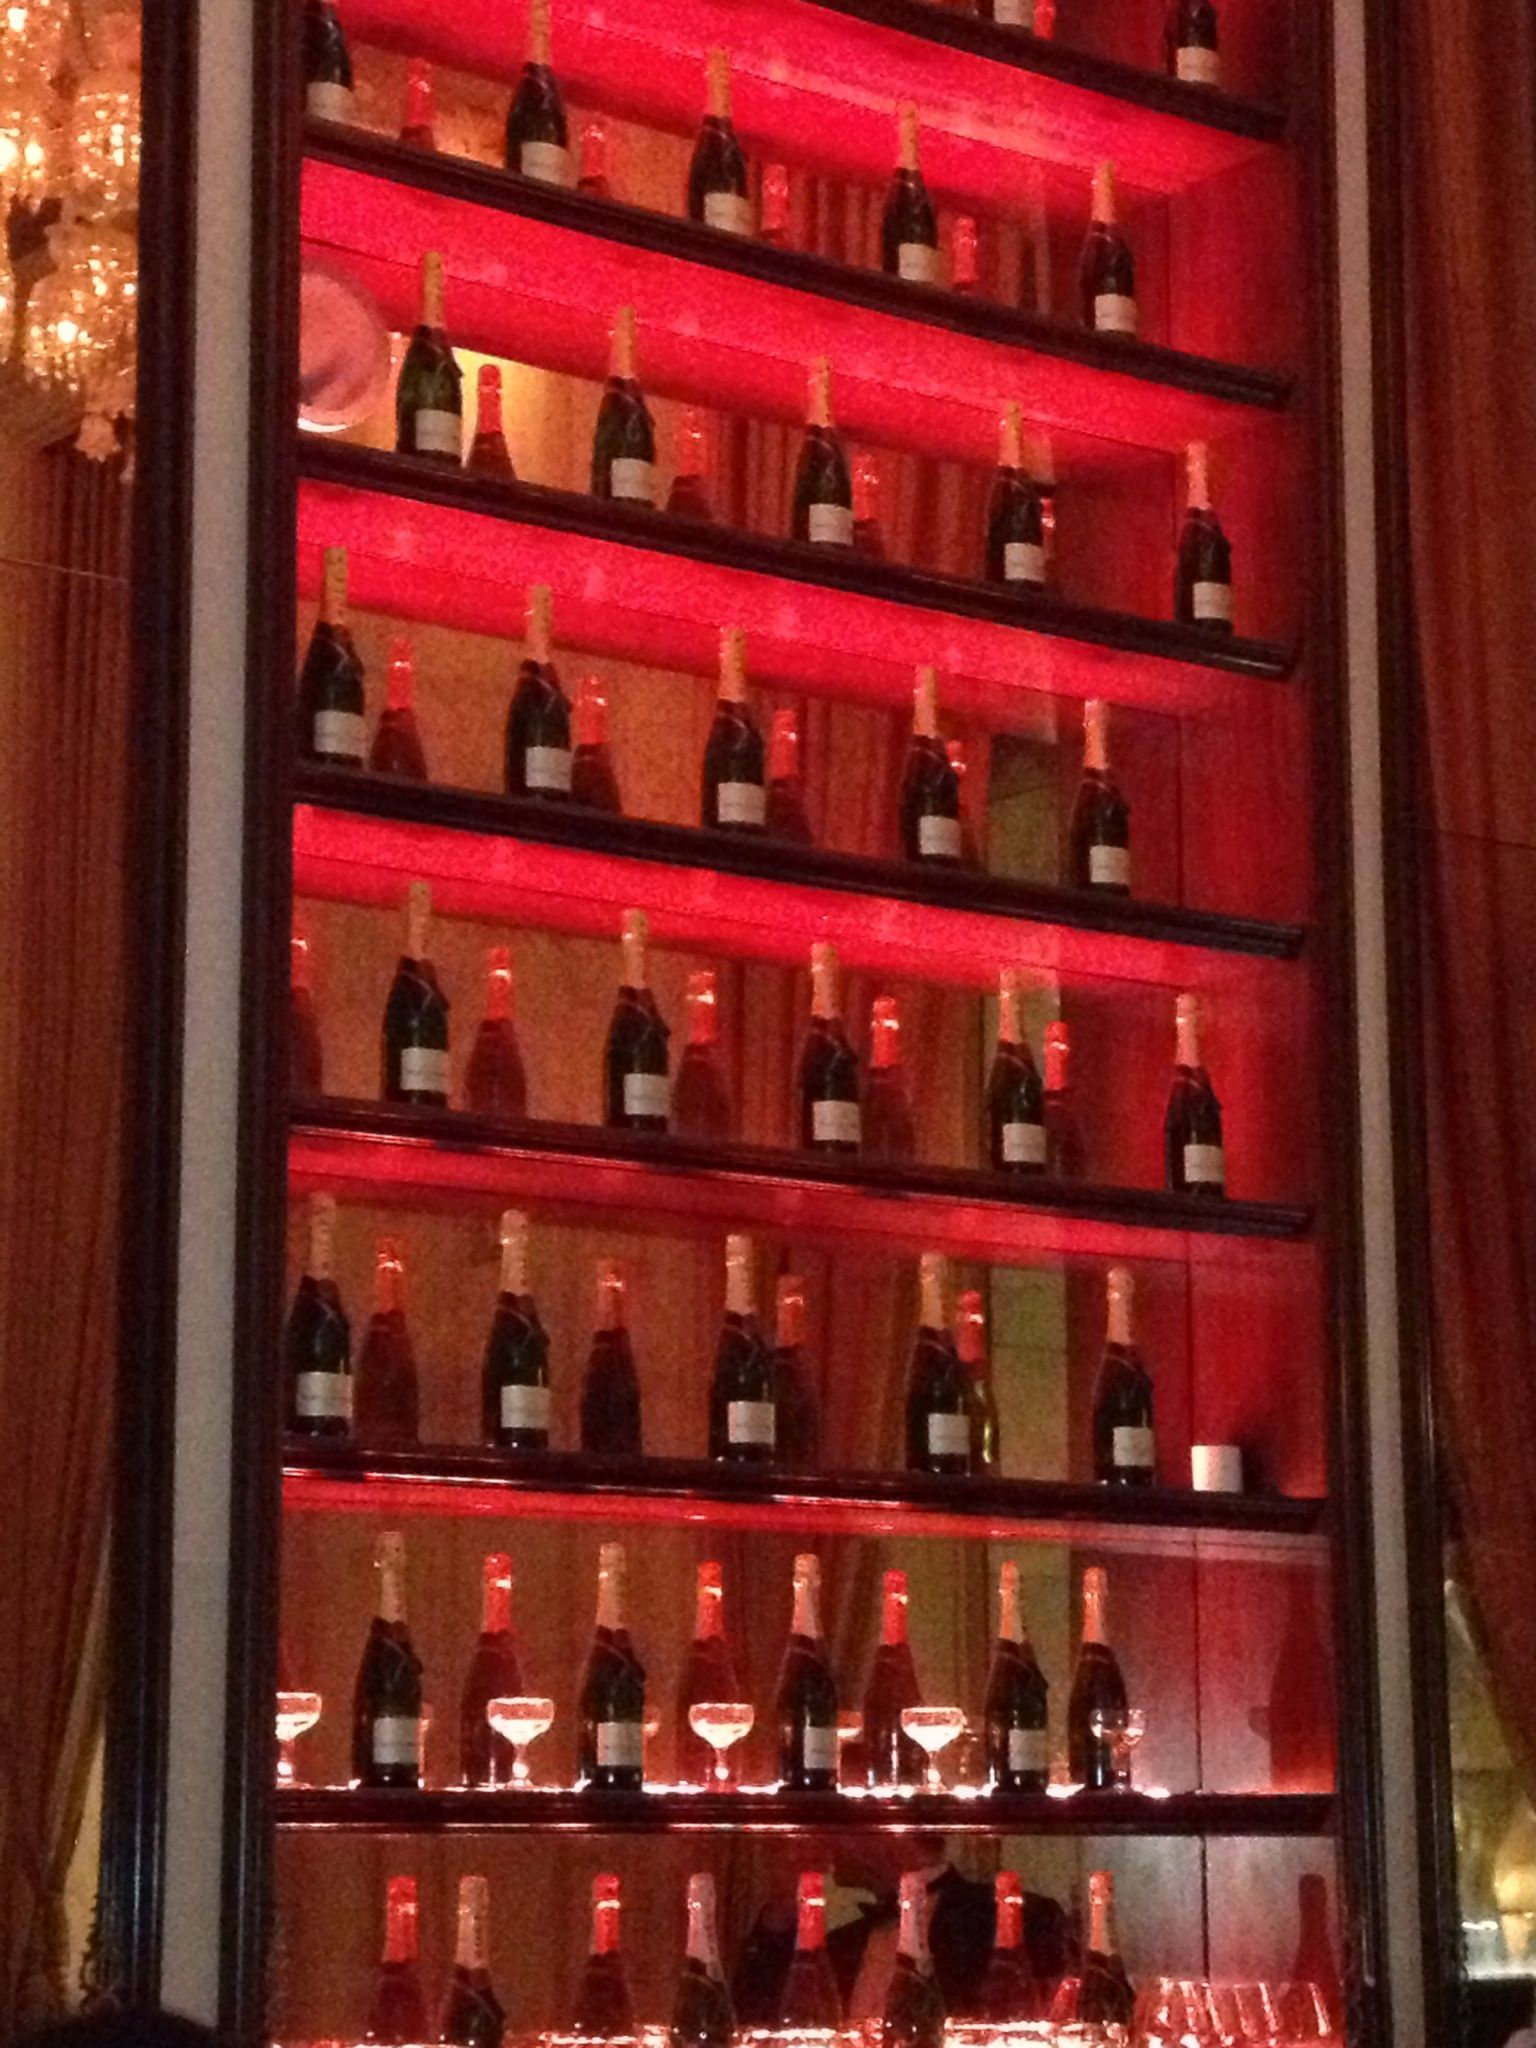 The Plaza Ny The Champagne Bar Champagne Bar Champagne Wines